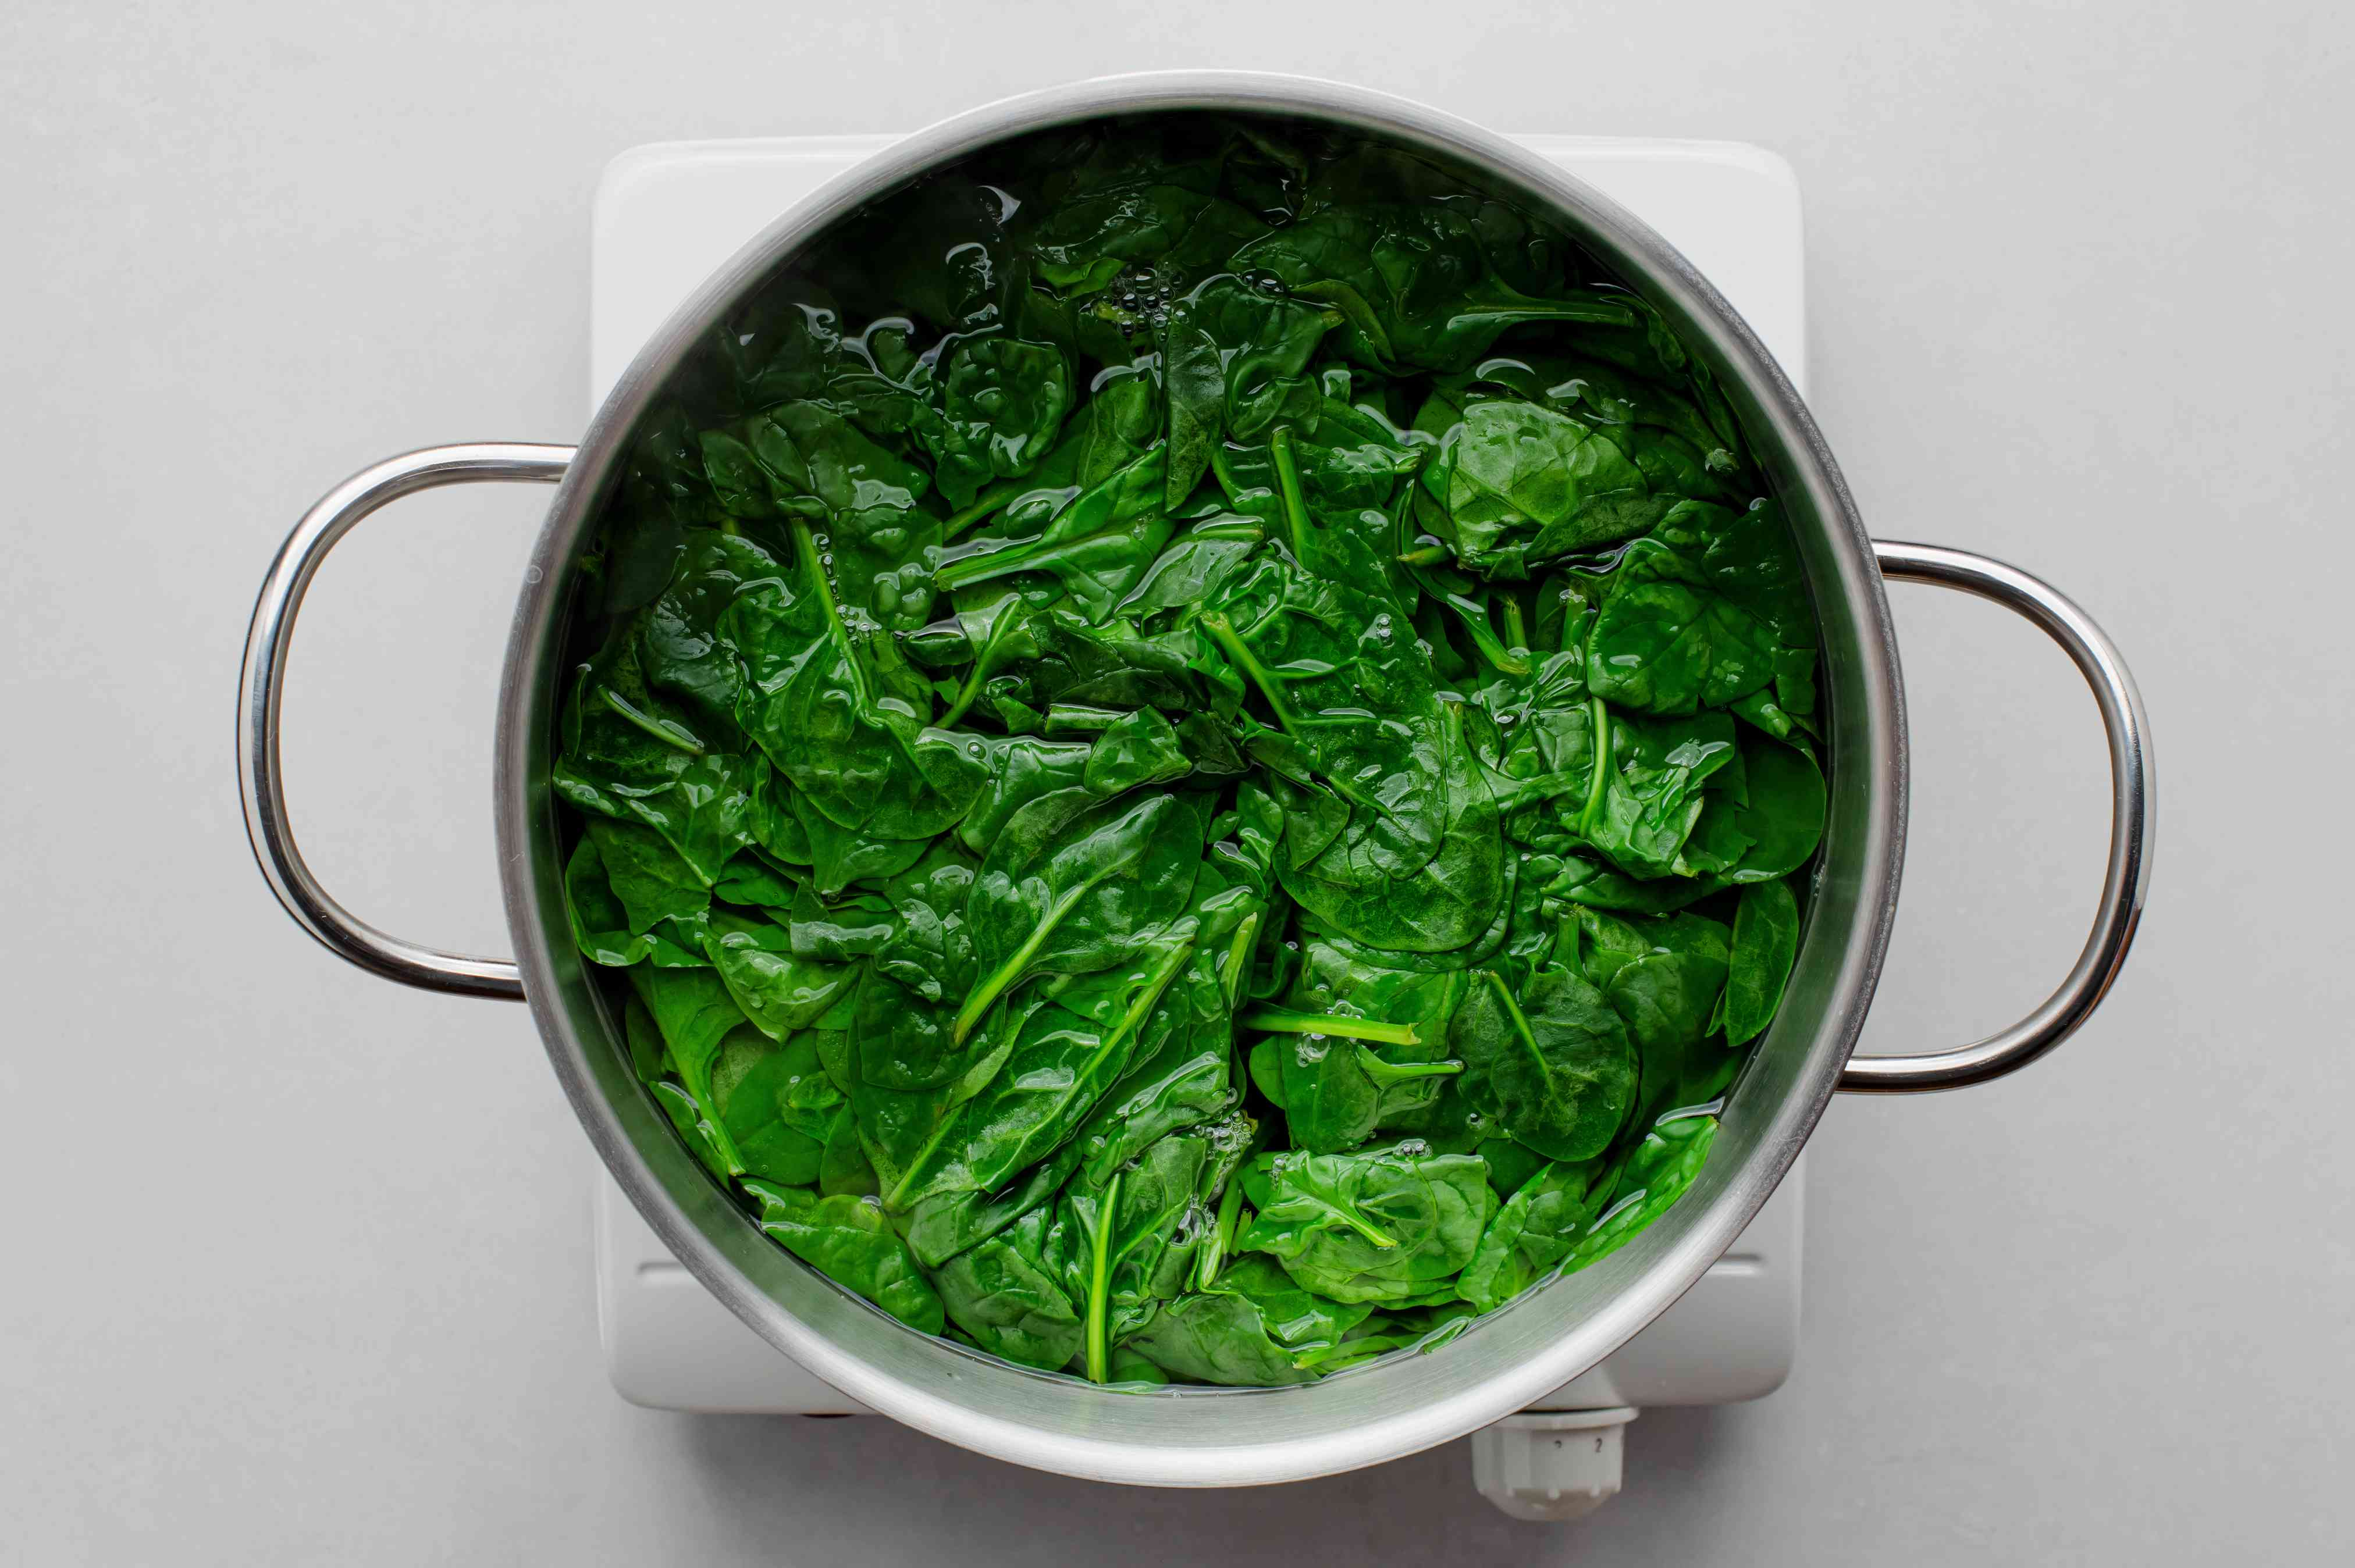 Blanch the spinach in boiling water